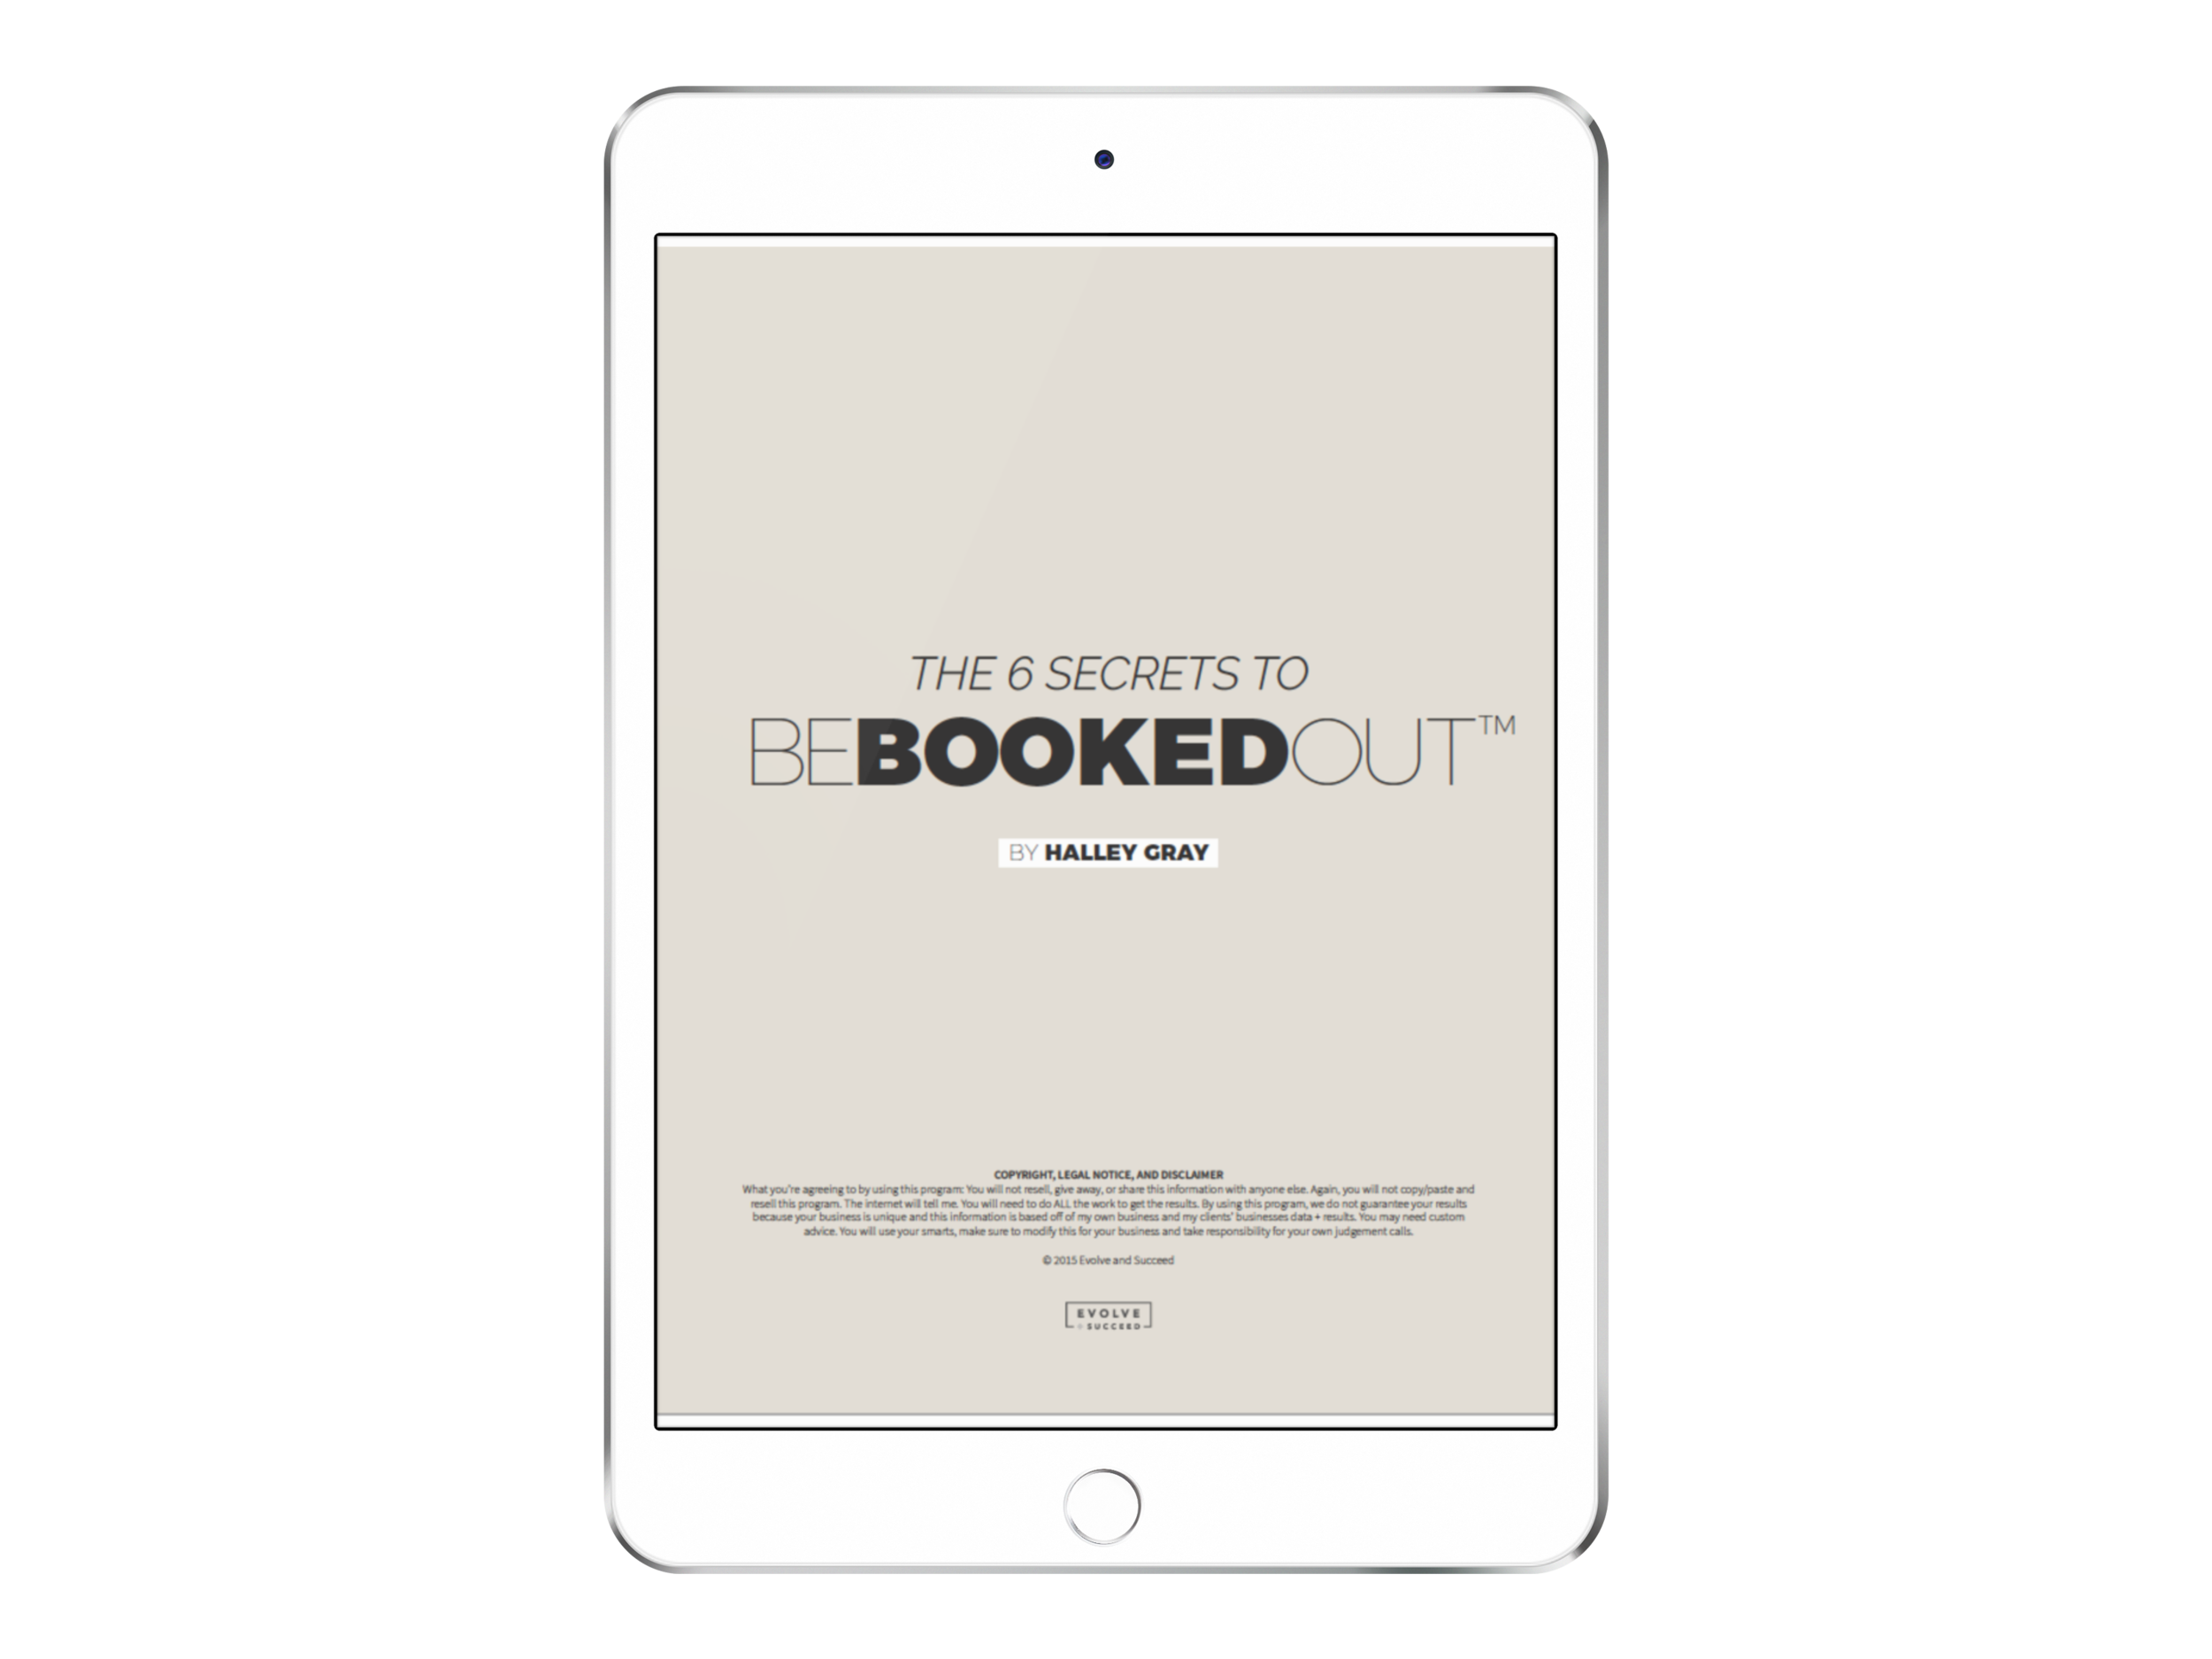 - Ready to be booked out 6-12 months in advance with high-paying, drama free, quality clients? Download your FREE Guide on The 6 Secrets to Be Booked Out.